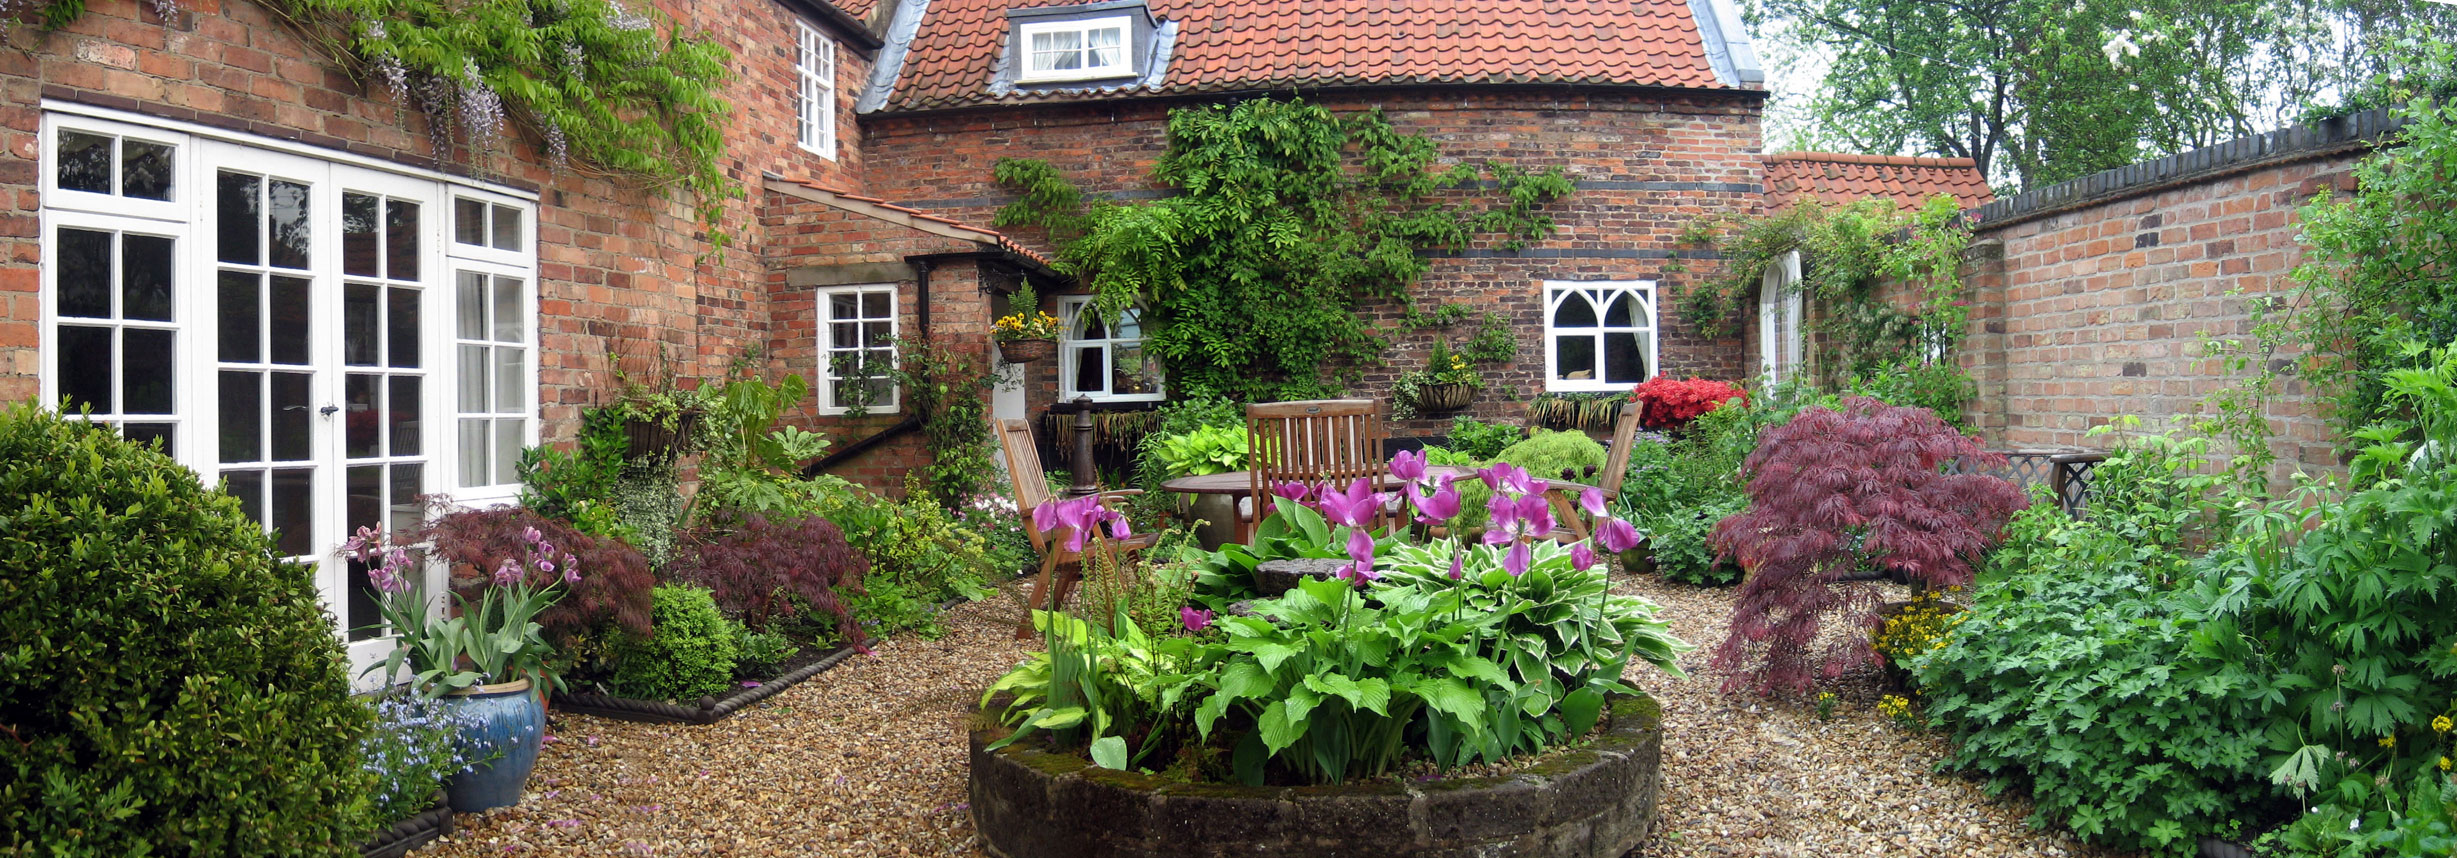 Traditional courtyard garden design style and planting for Courtyard landscaping ideas